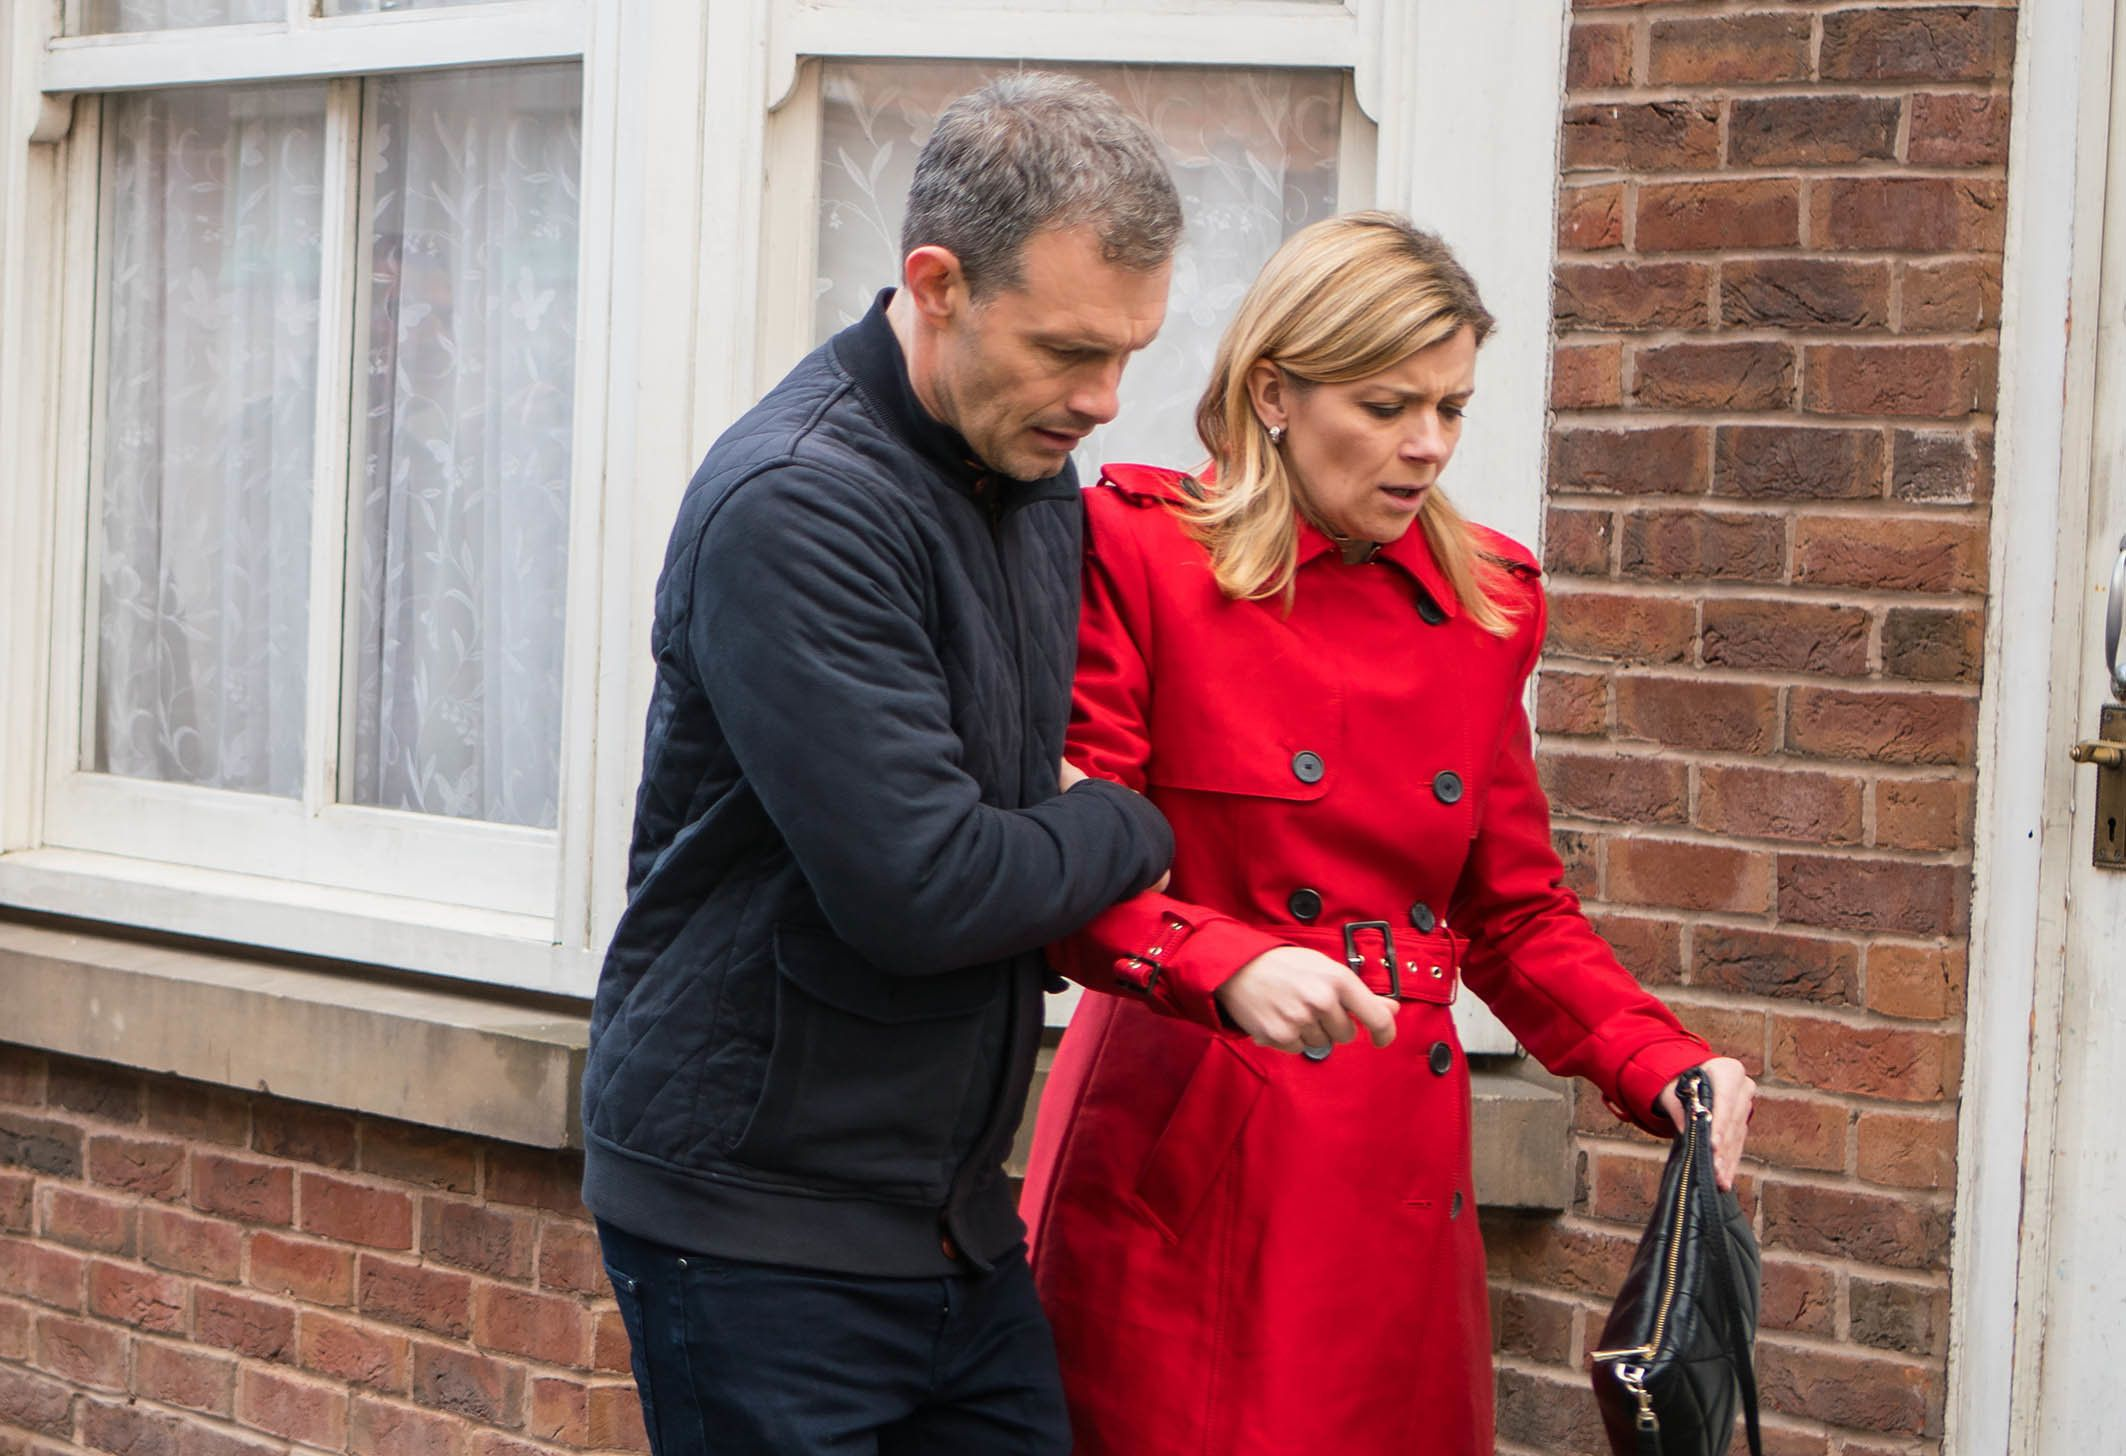 Nick has supported Leanne throughout her